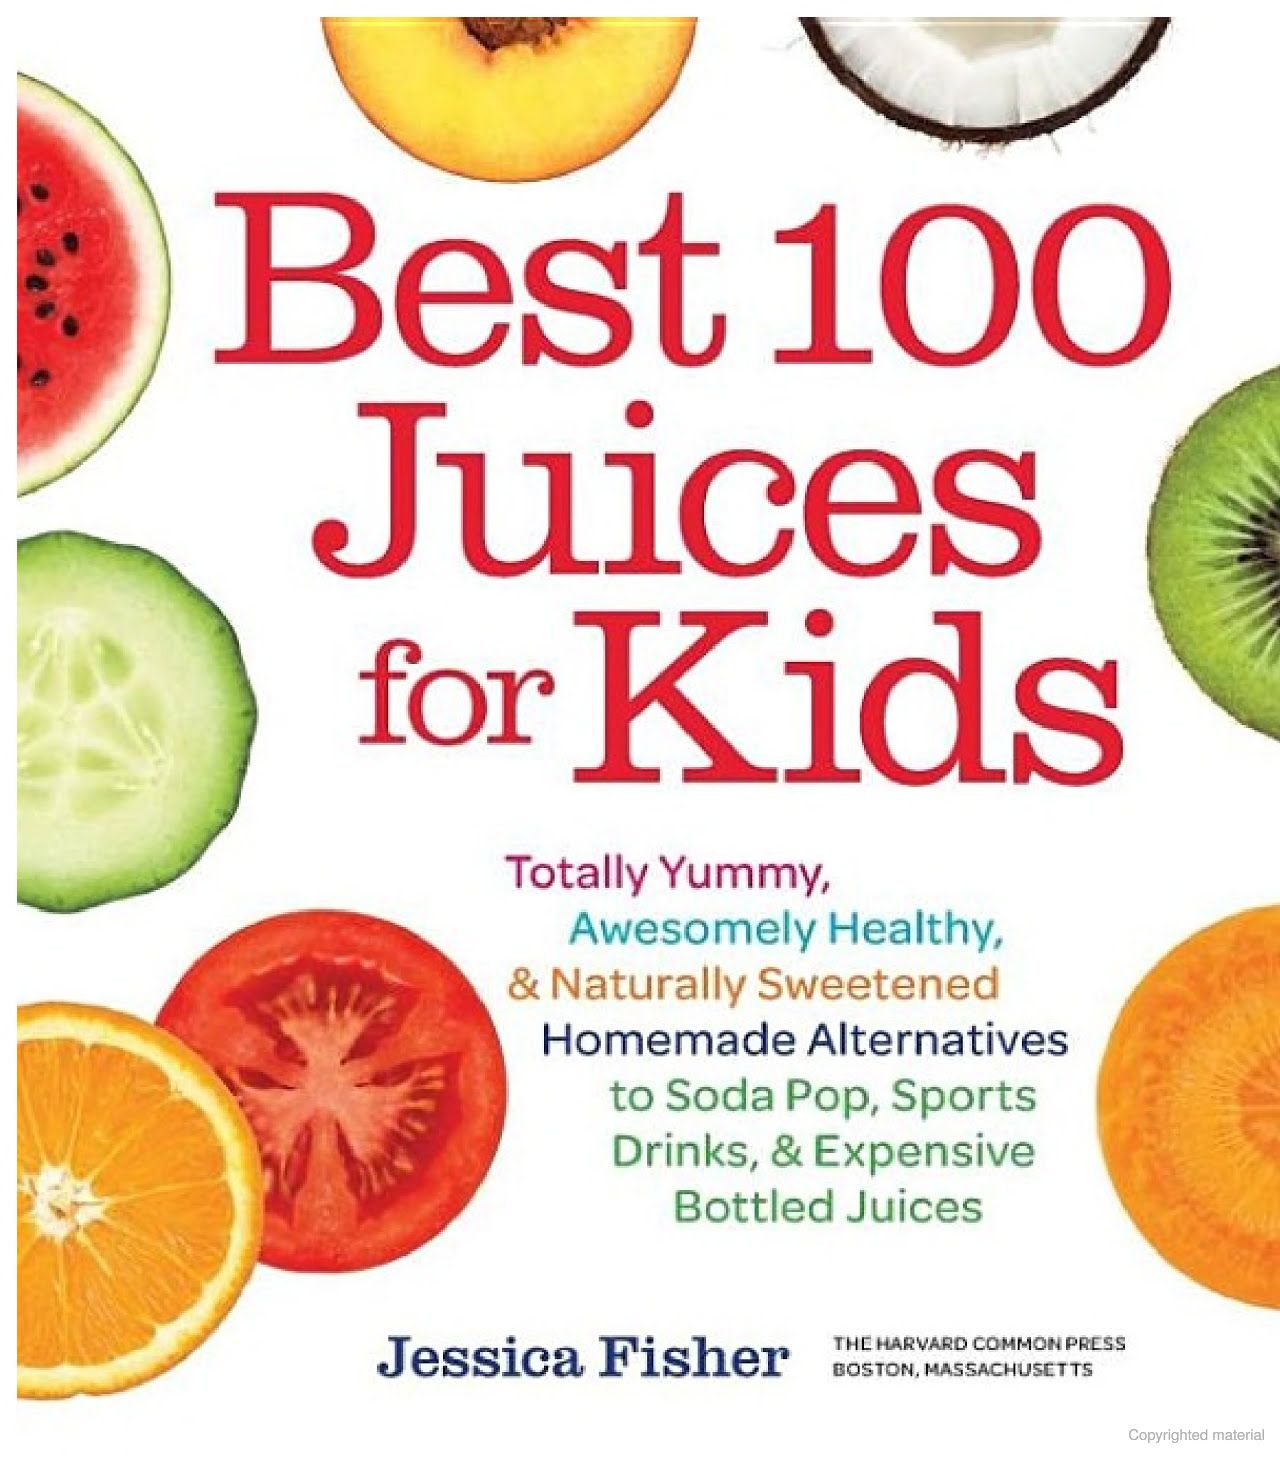 Best 100 Juices for Kids Totally Yummy, Awesomely Healthy